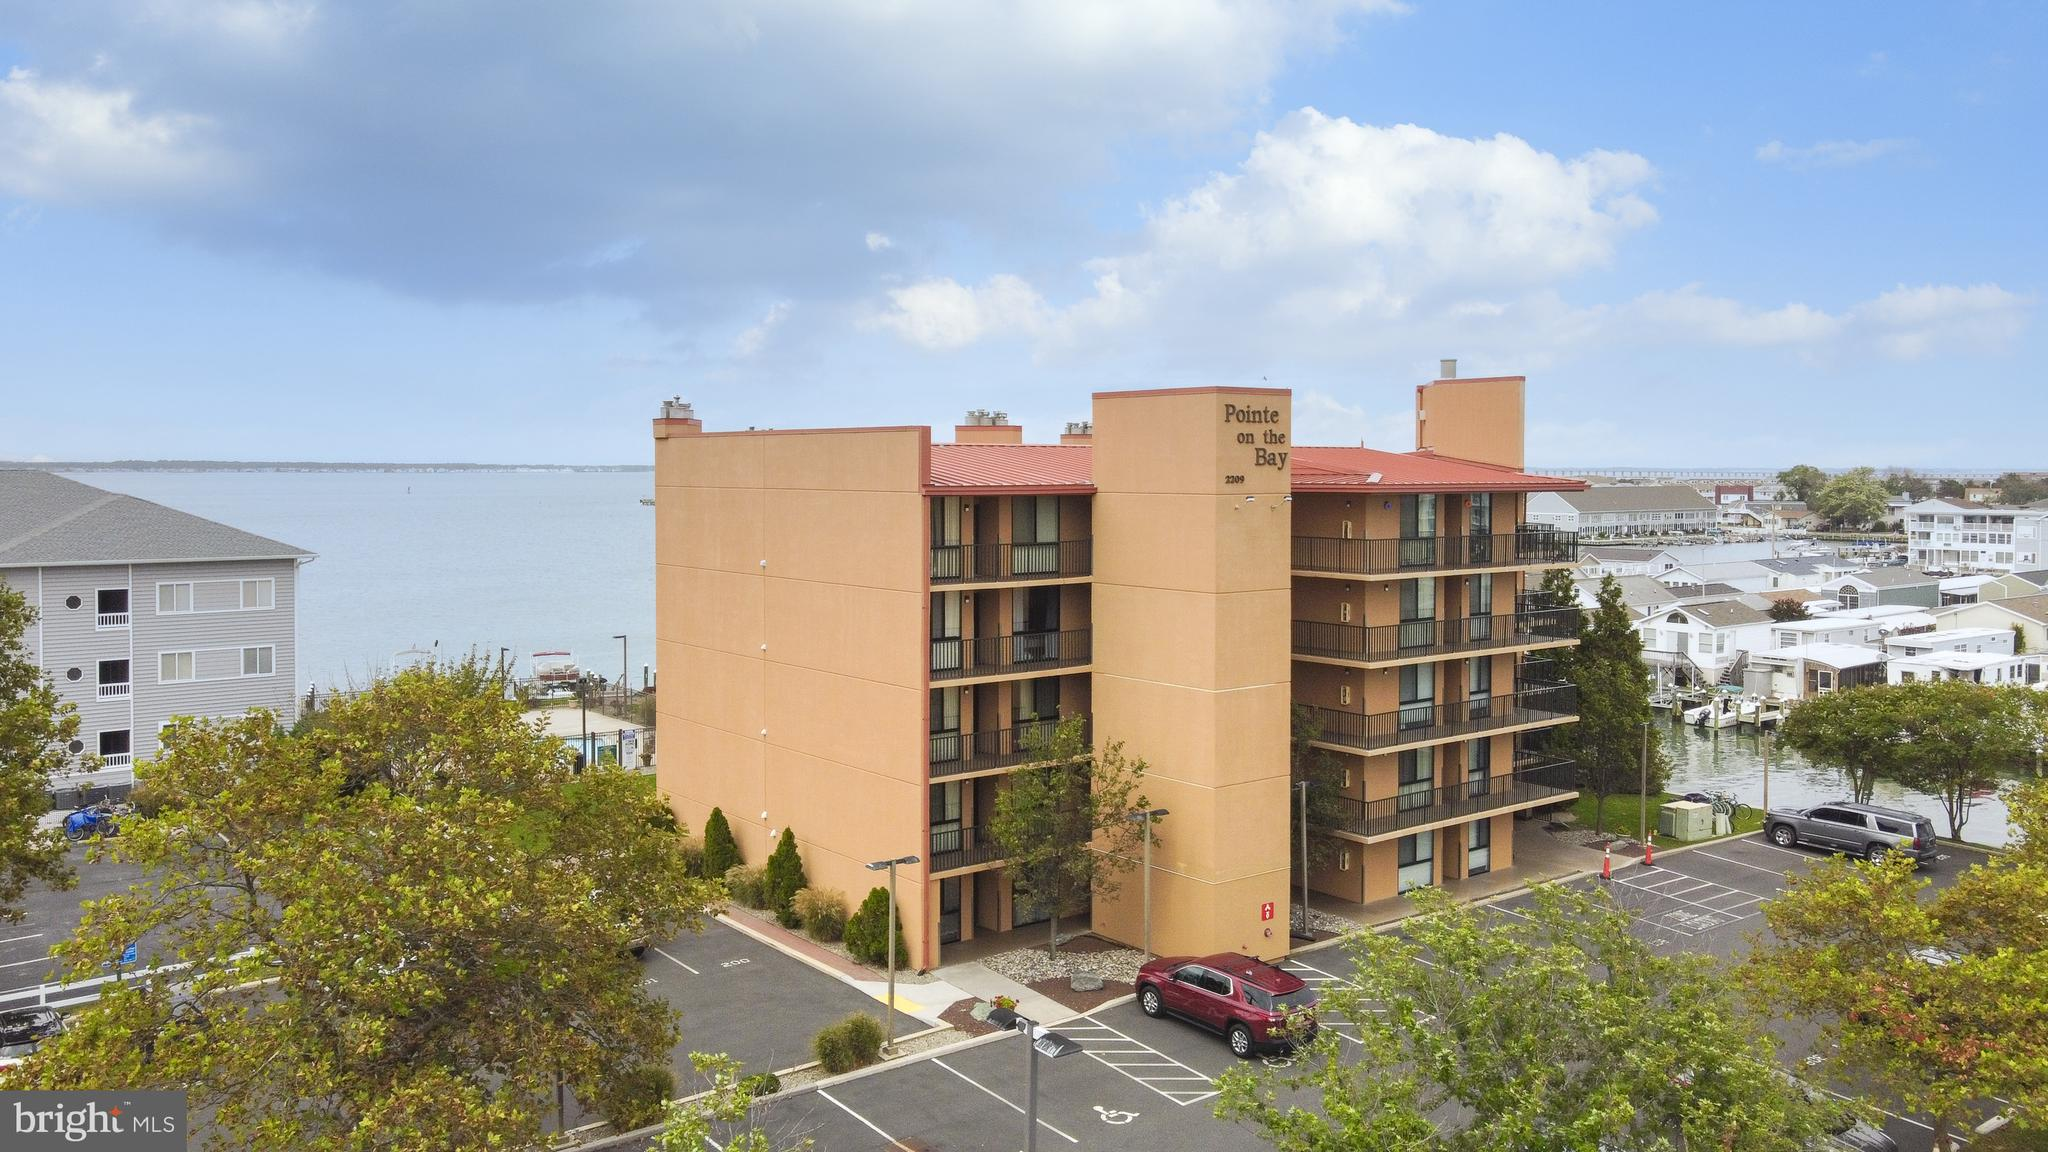 Rarely available 1 Bedroom Unit - 672 square feet - in Pointe on the Bay.  Enjoy beautiful west faci